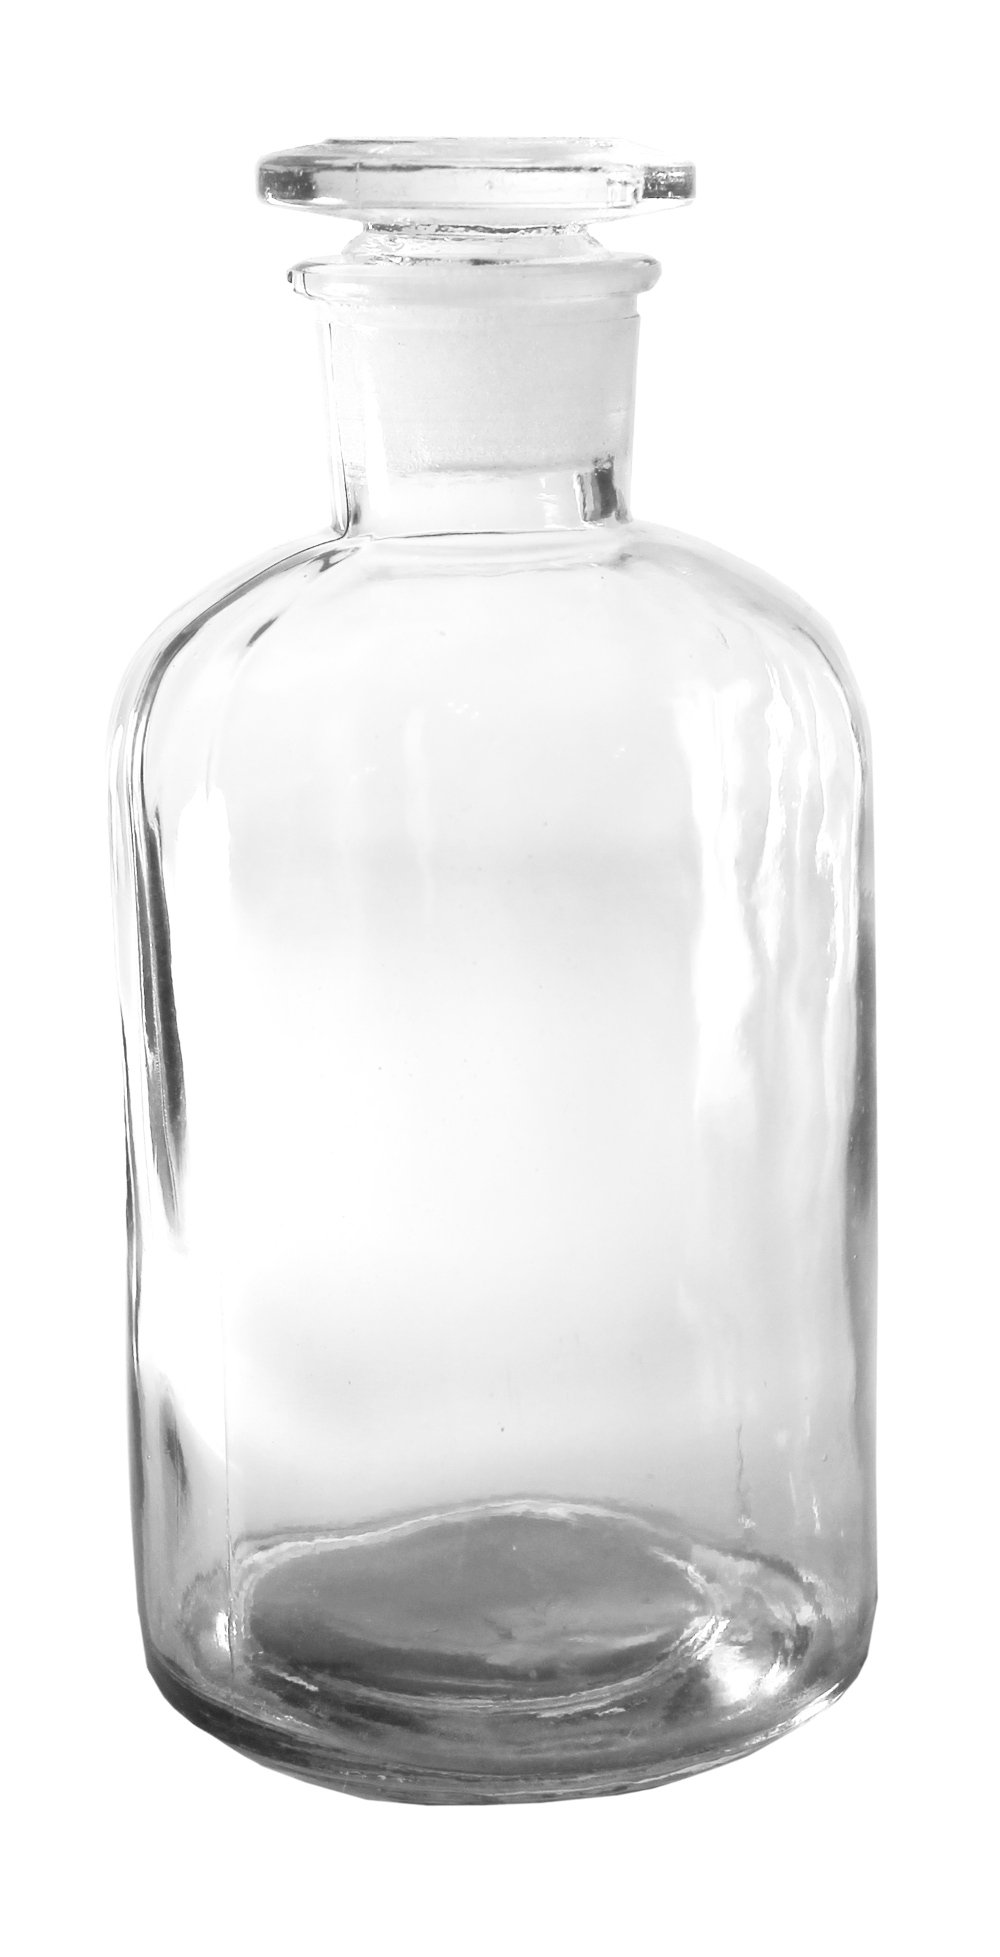 SEOH Reagent Bottle Clear Glass - Capacity (ml) 2500